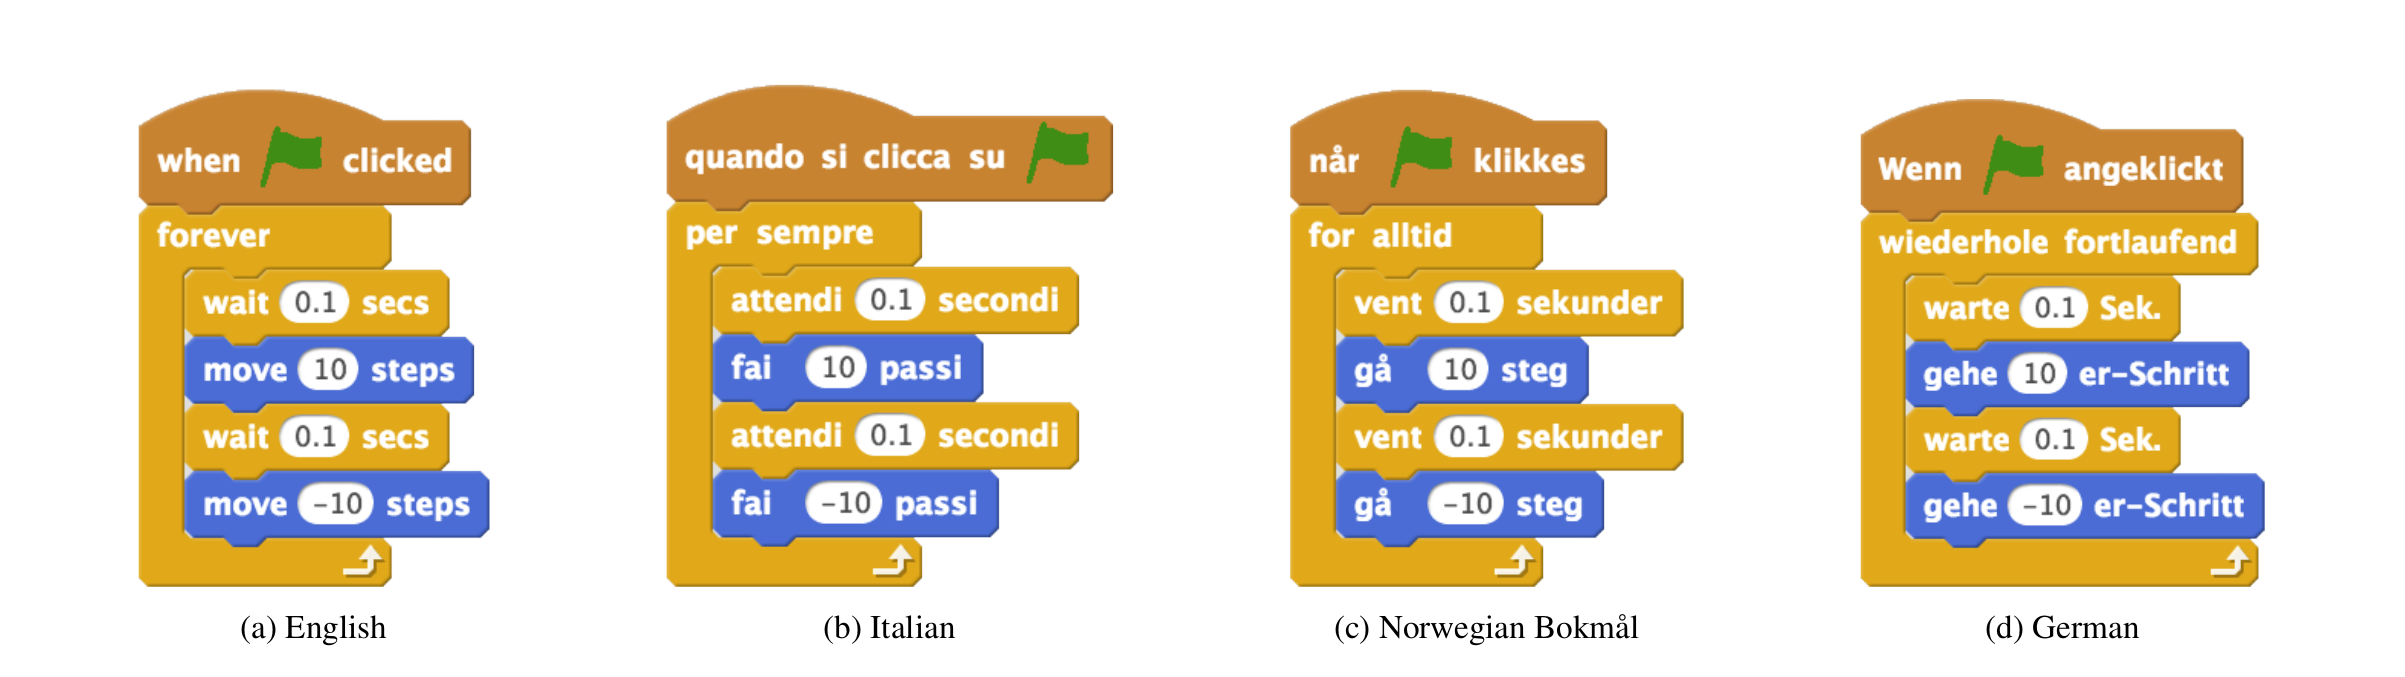 Scratch code translated into English, Italian, Norwegian Bokmål, and German